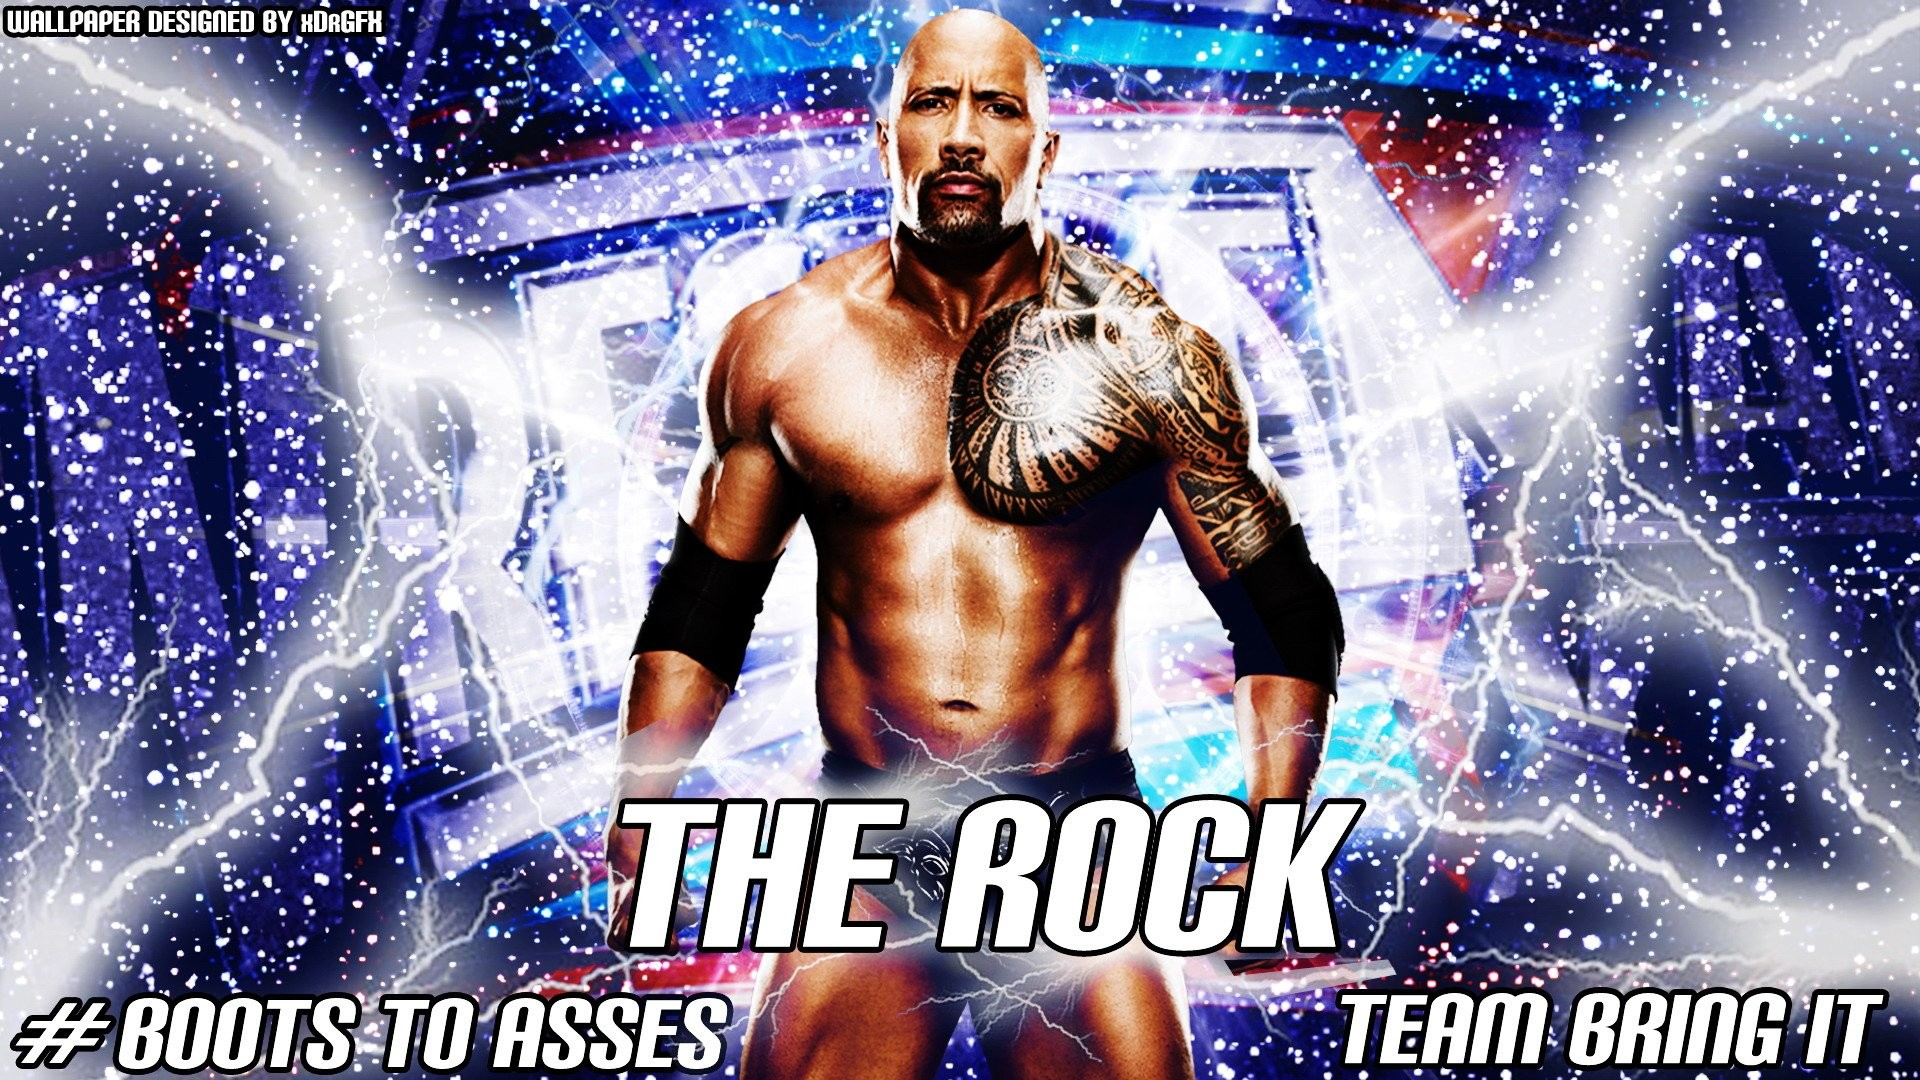 WWE Wallpapers For Desktop Group 1024×768 WWE Wallpapers For Desktop (45  Wallpapers) | Adorable Wallpapers | Desktop | Pinterest | Wwe wallpapers  and …